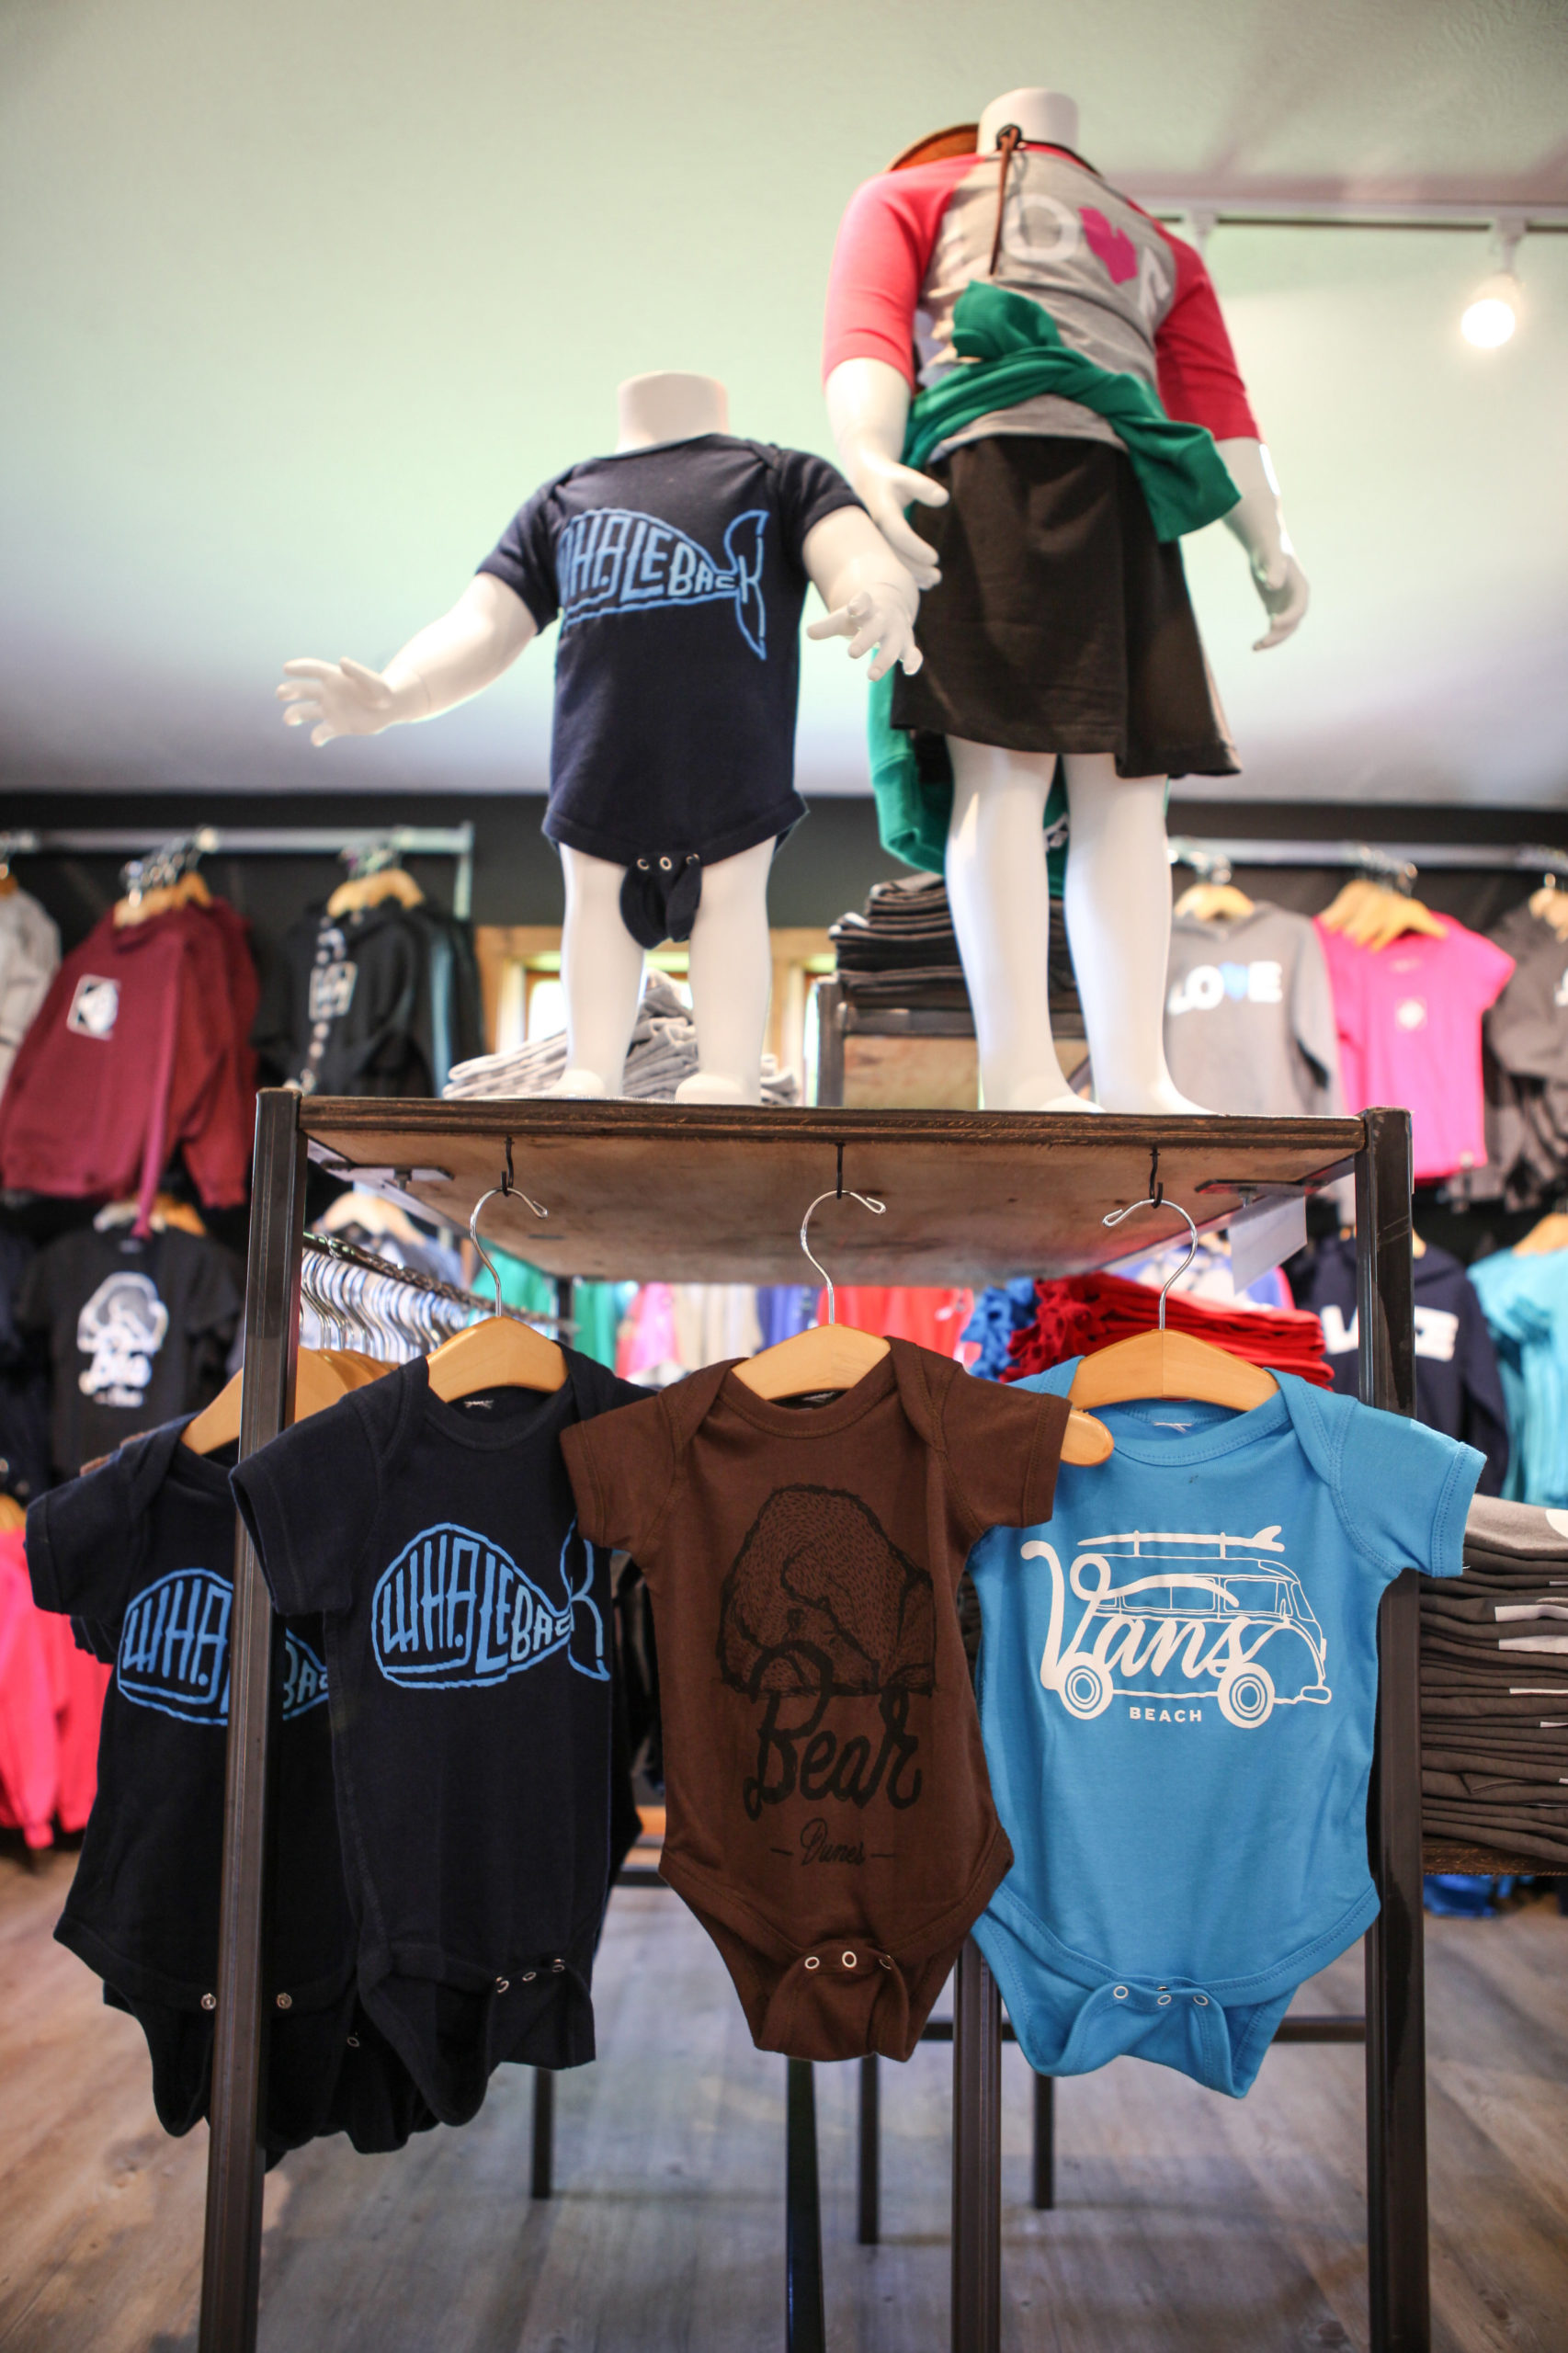 kids clothing at M22 store glen arbor